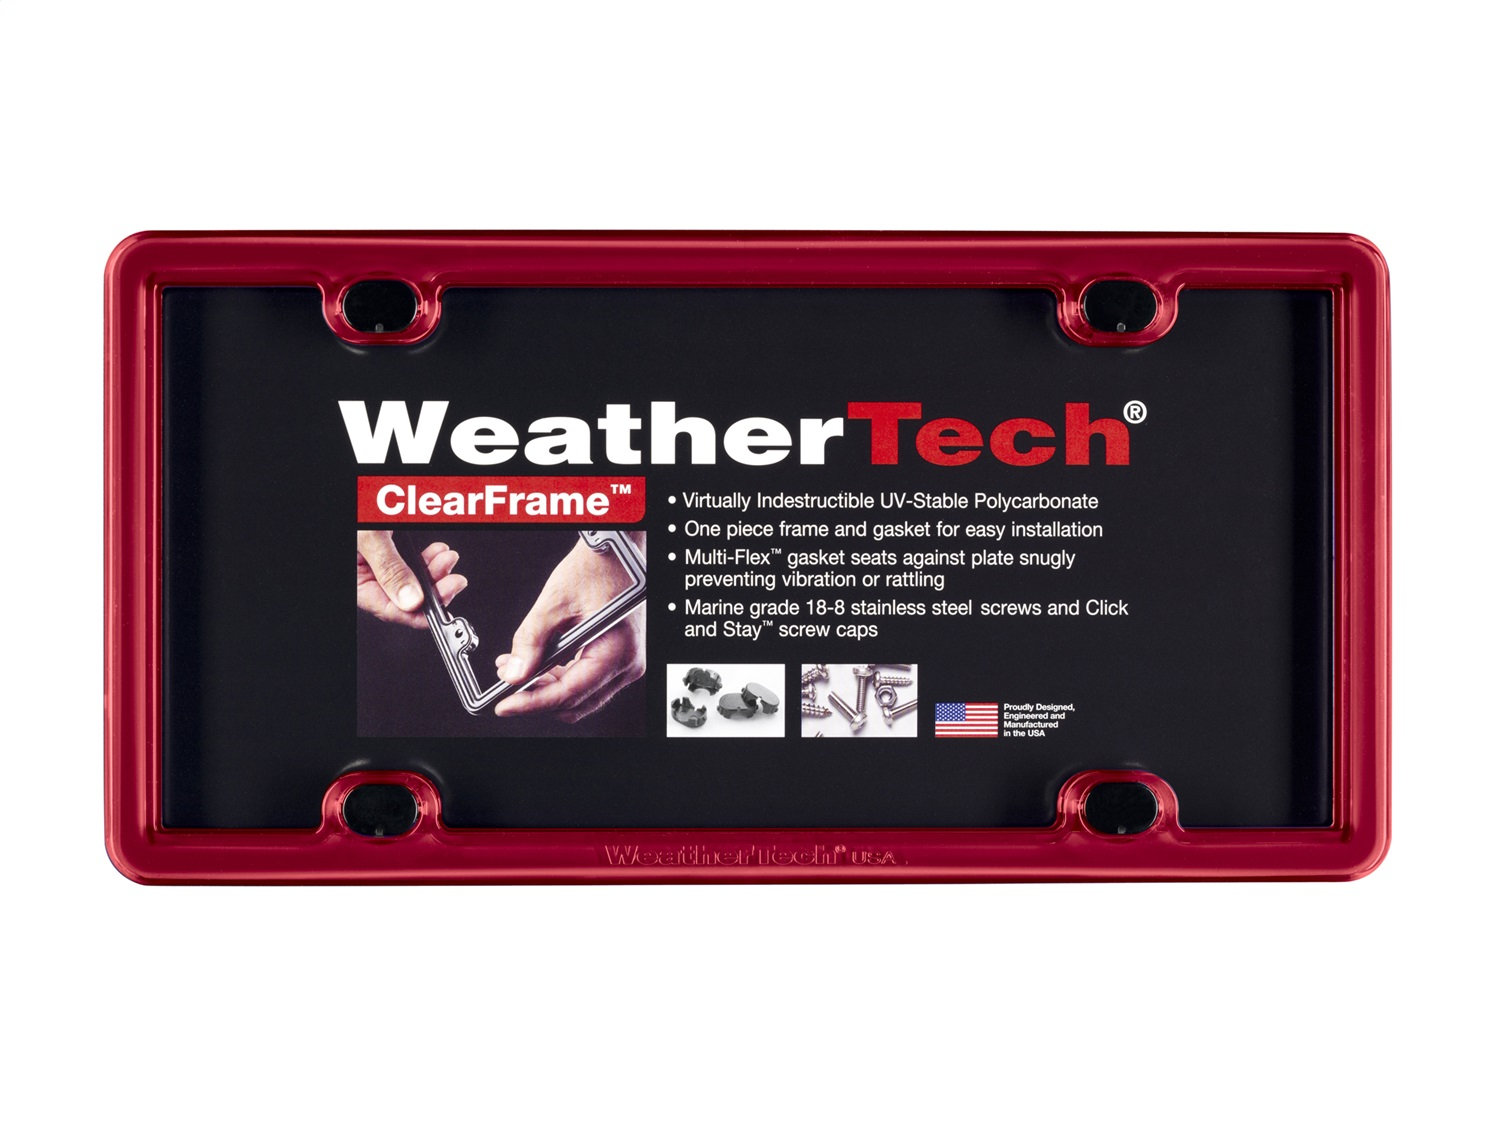 WeatherTech 8ALPCF1 Accessory, Red